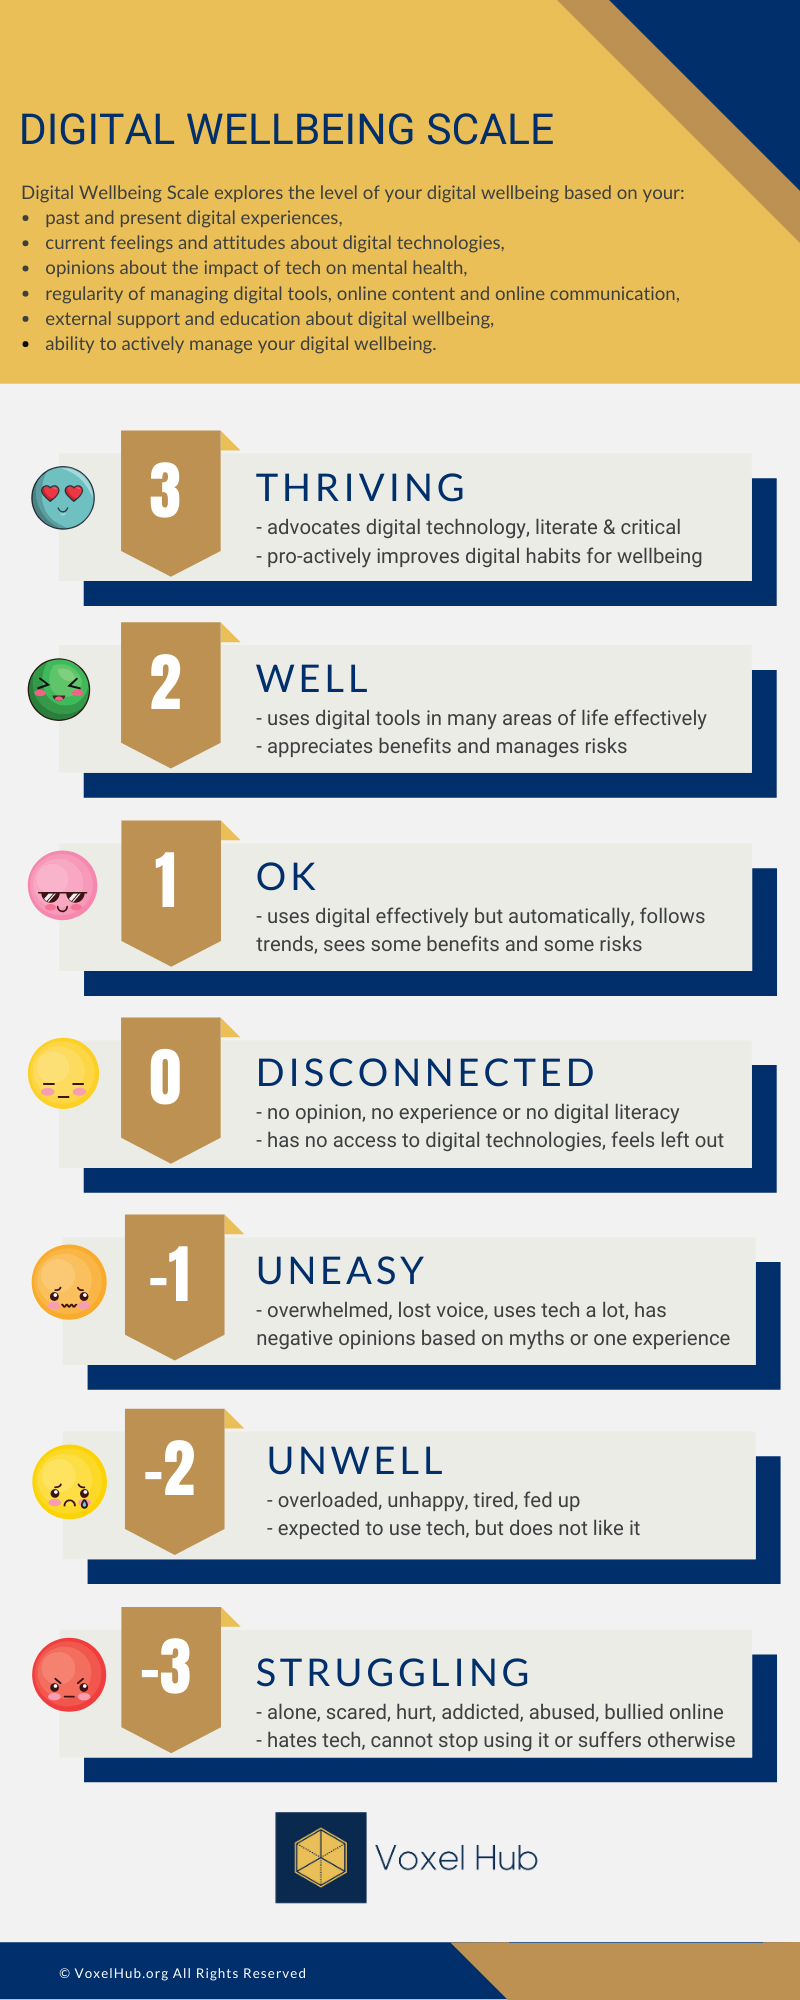 Digital Wellbeing Scale (-3 to 3)